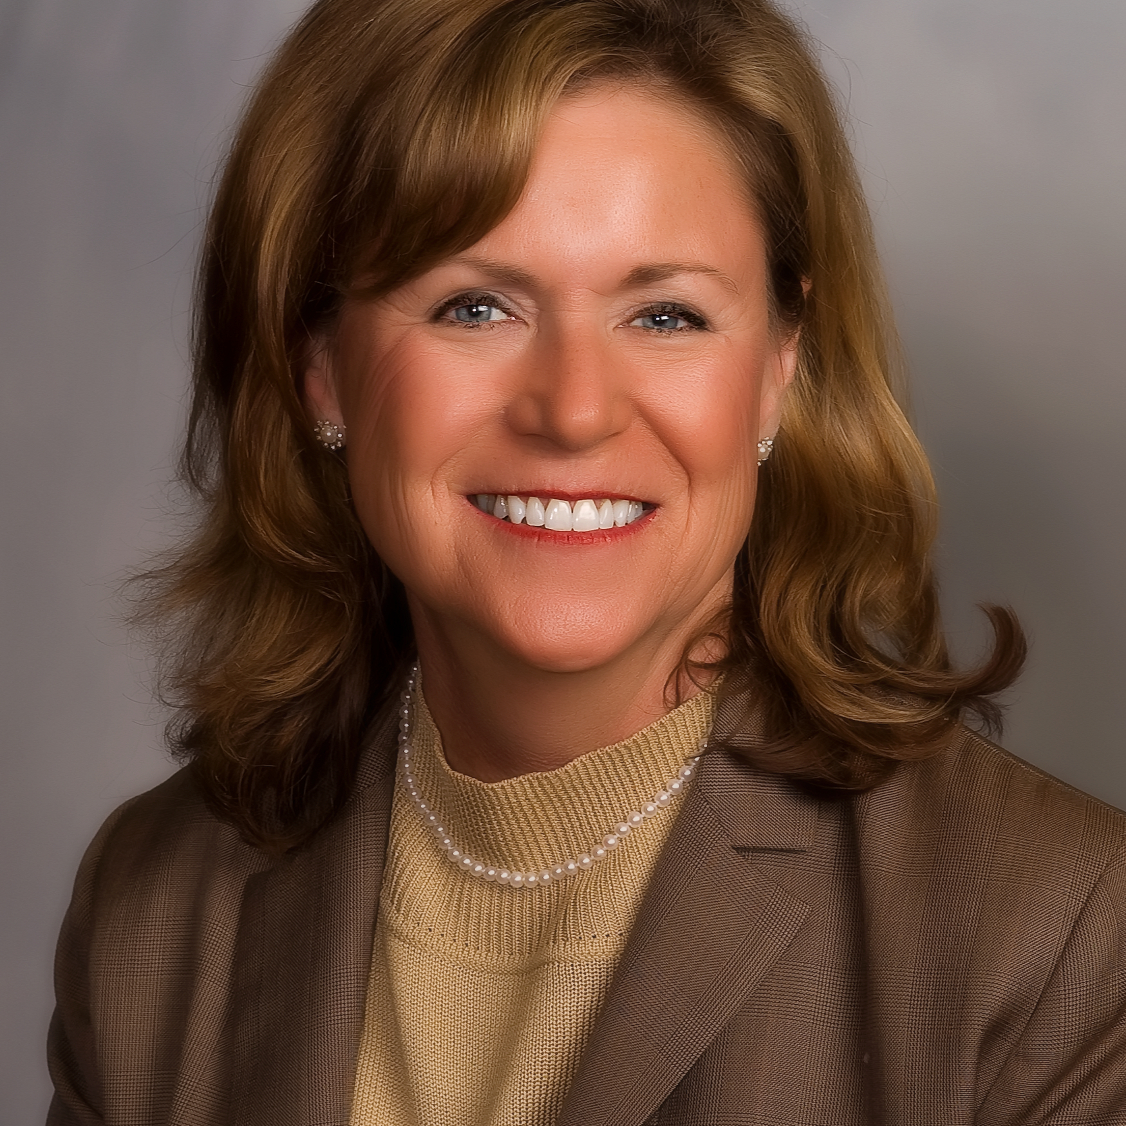 BARBARA ANNE HEALY's advisor photo